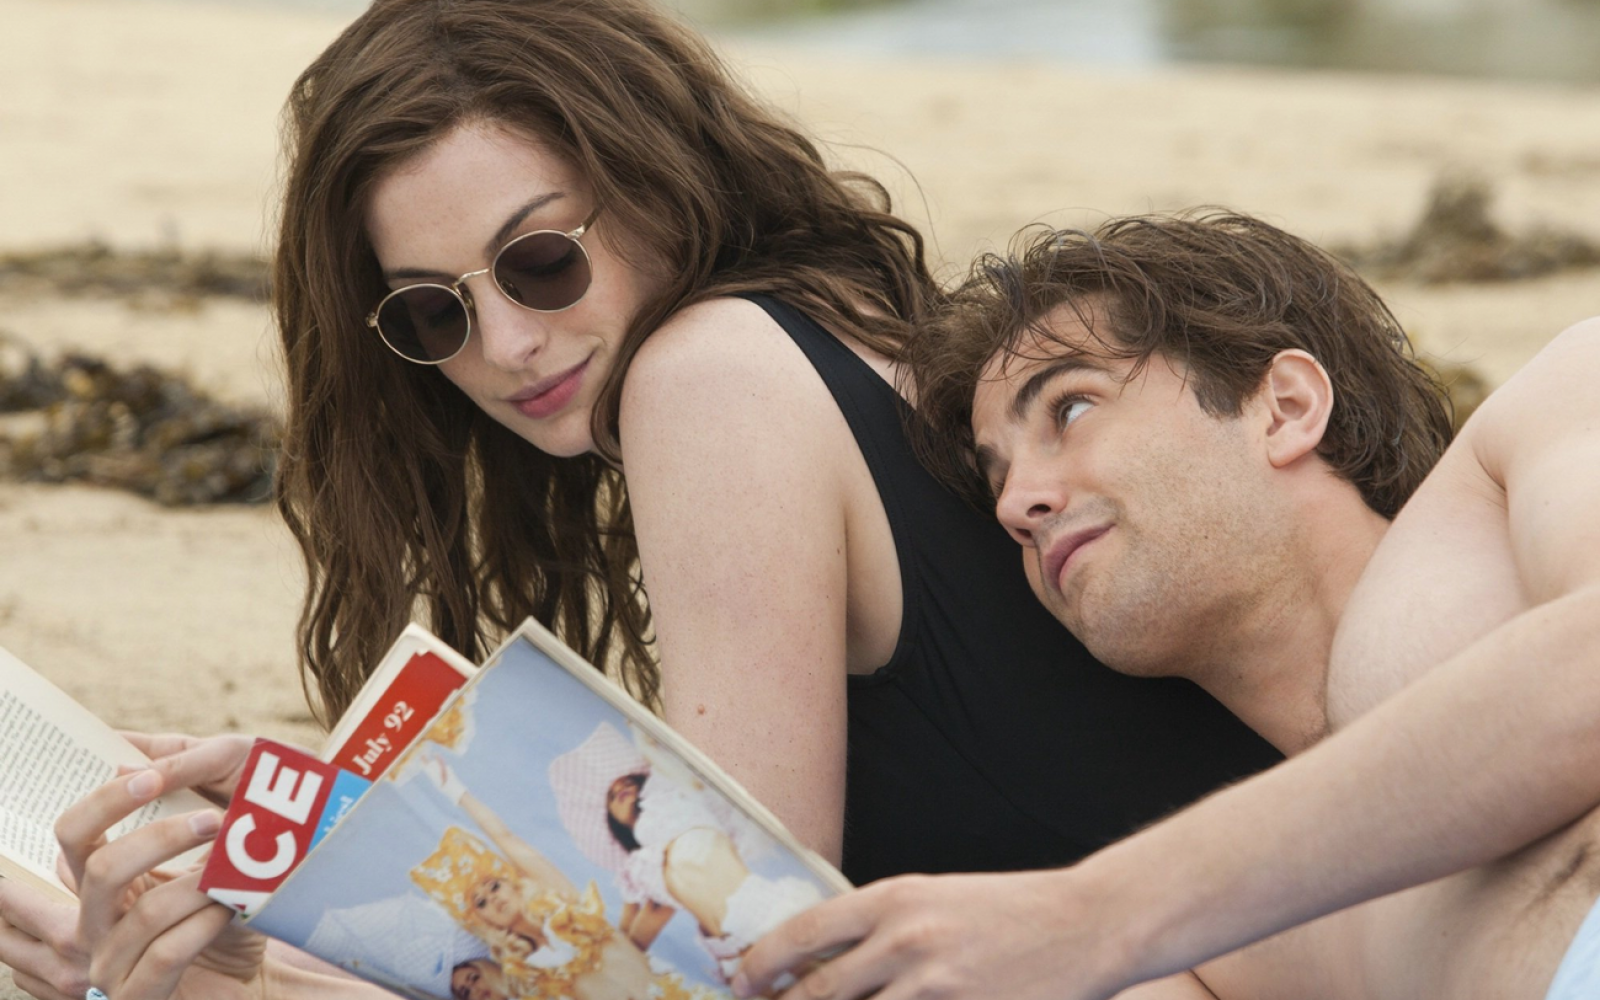 18 Quotes From 'One Day' That Will Make You Believe In True Love